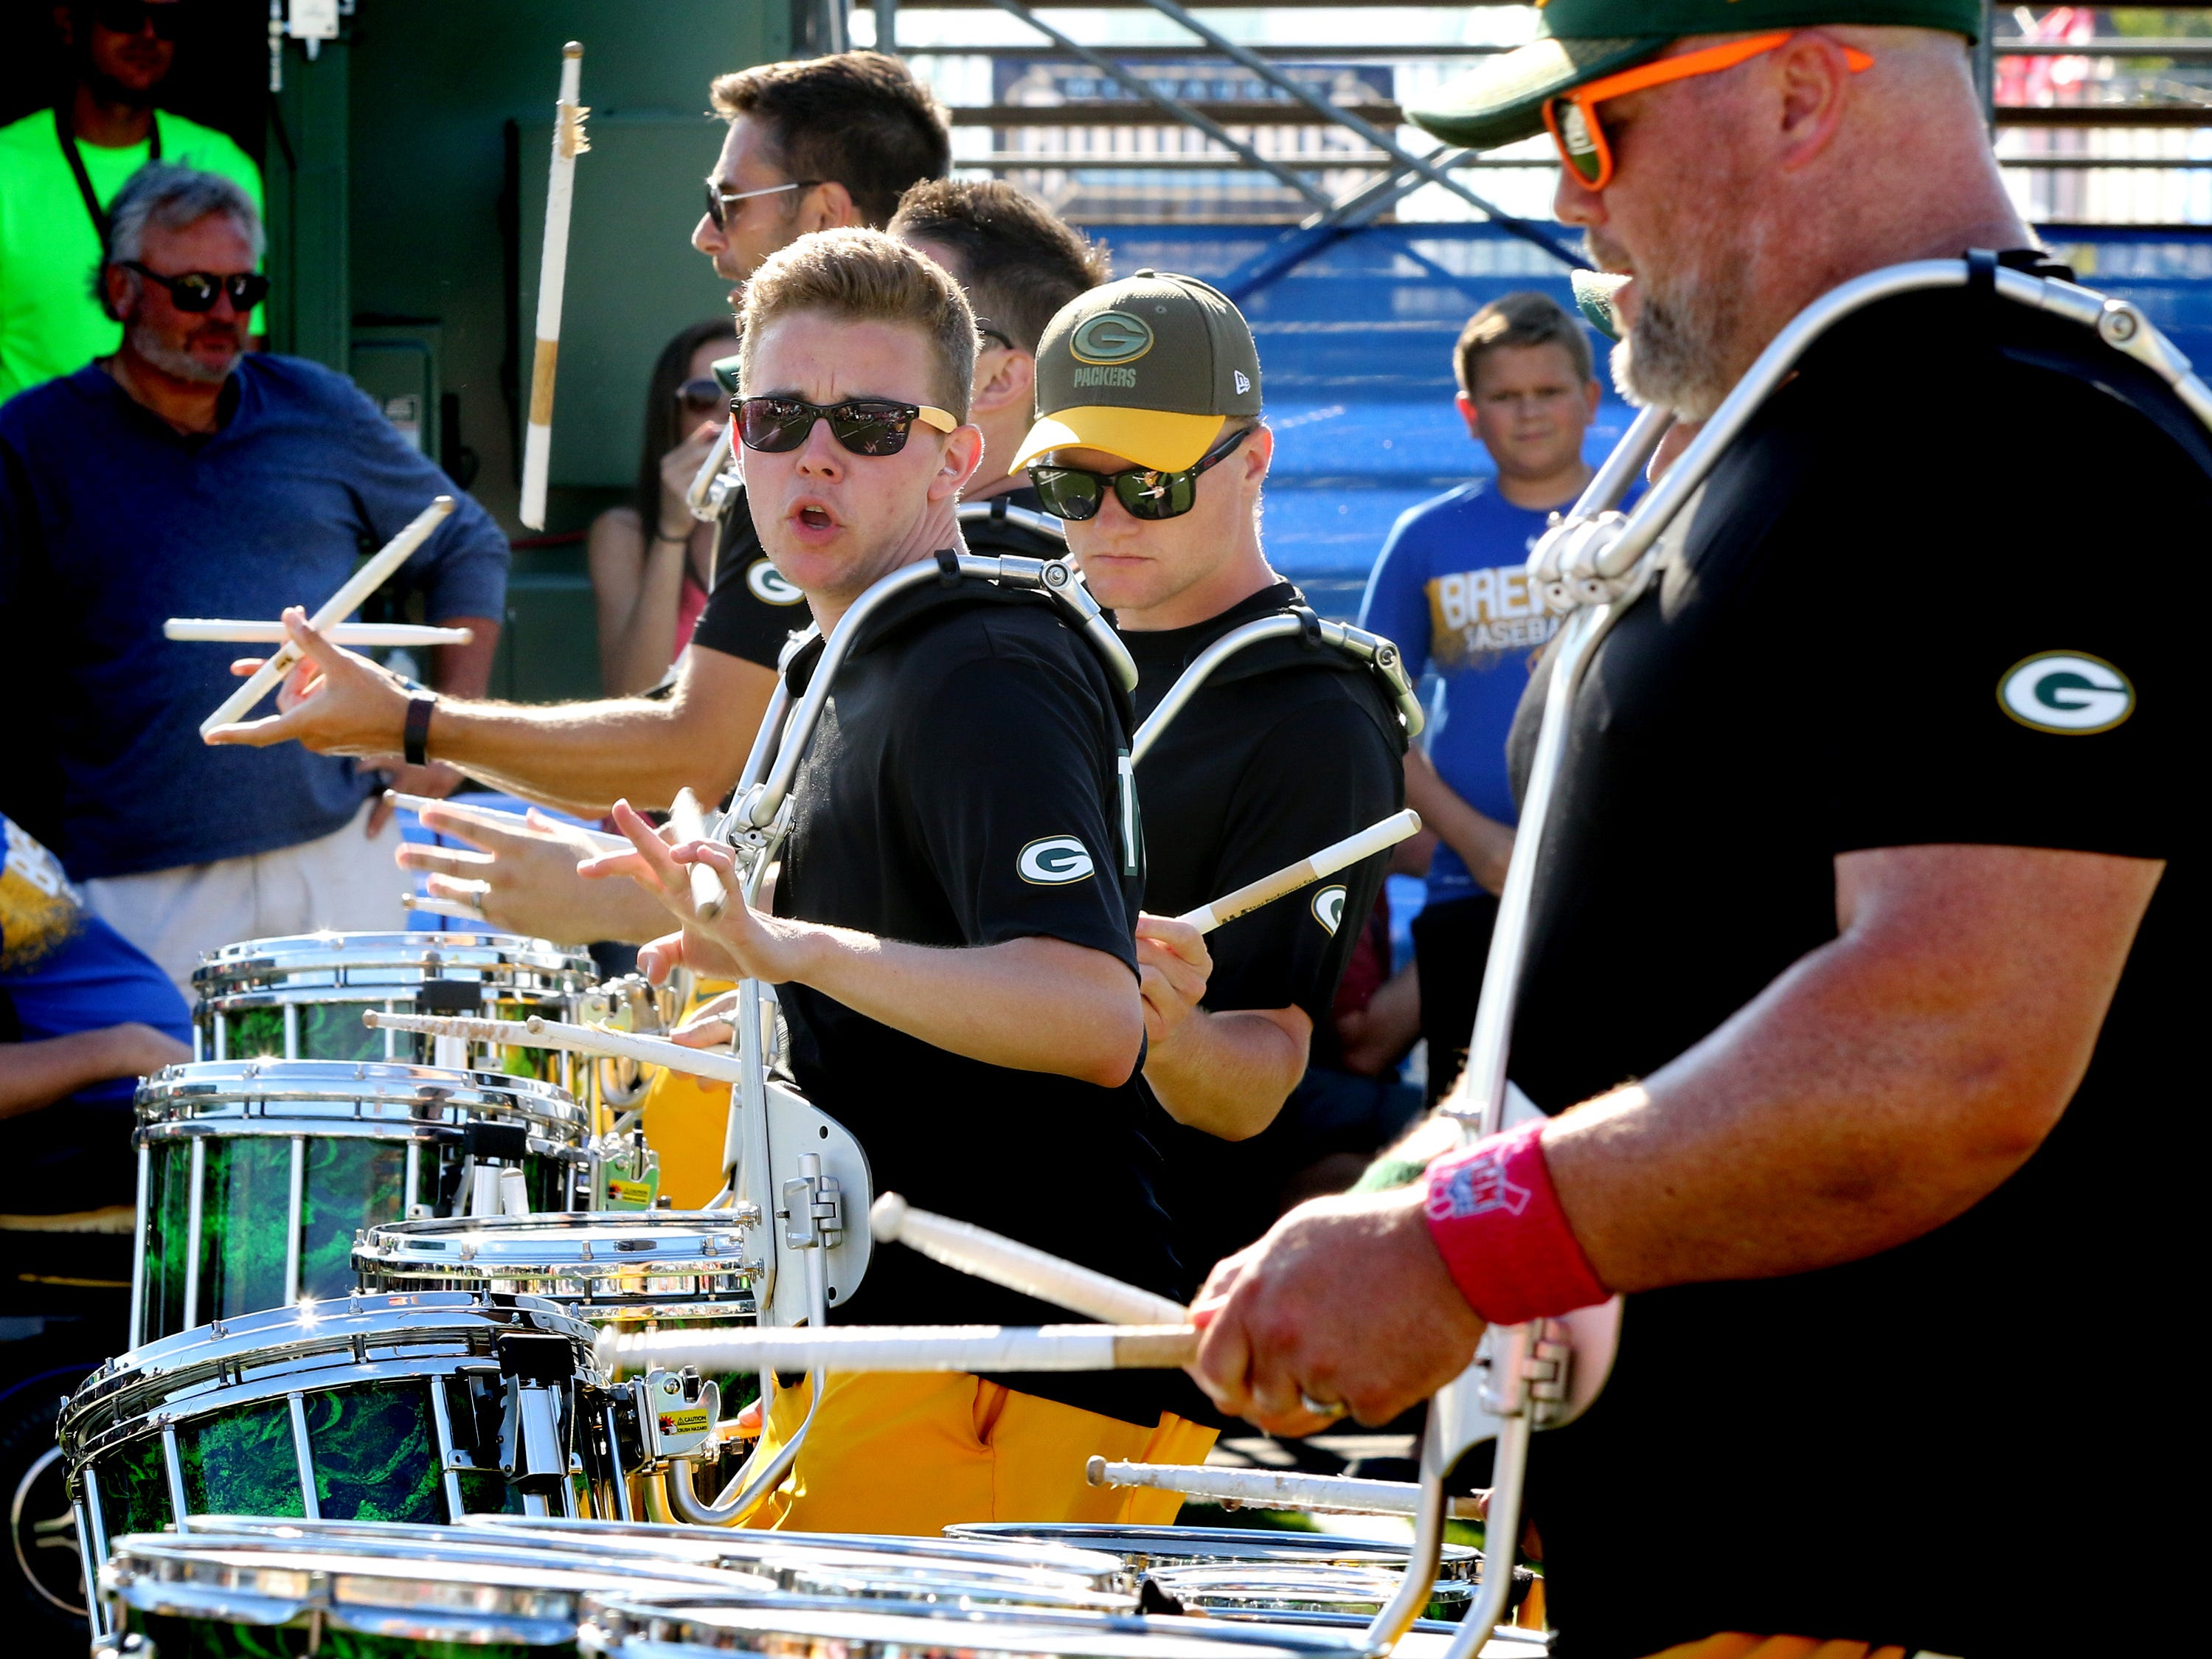 The Tundra Line pounds out a beat during one of its performances on opening day of the Wisconsin State Fair in West Allis on Aug. 2.